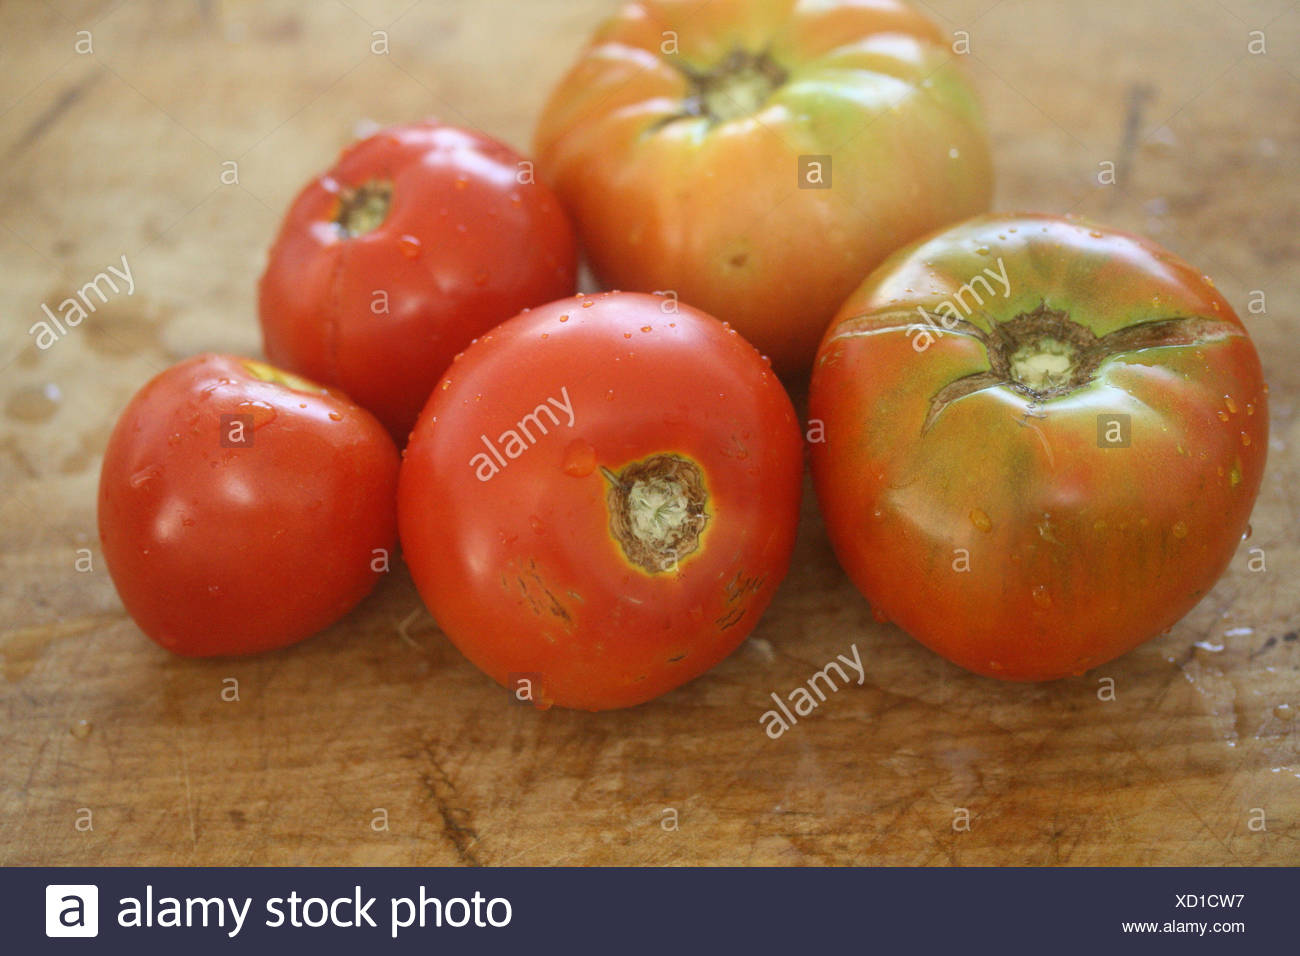 Five Heirloom Tomatoes on wooden chopping board - Stock Image